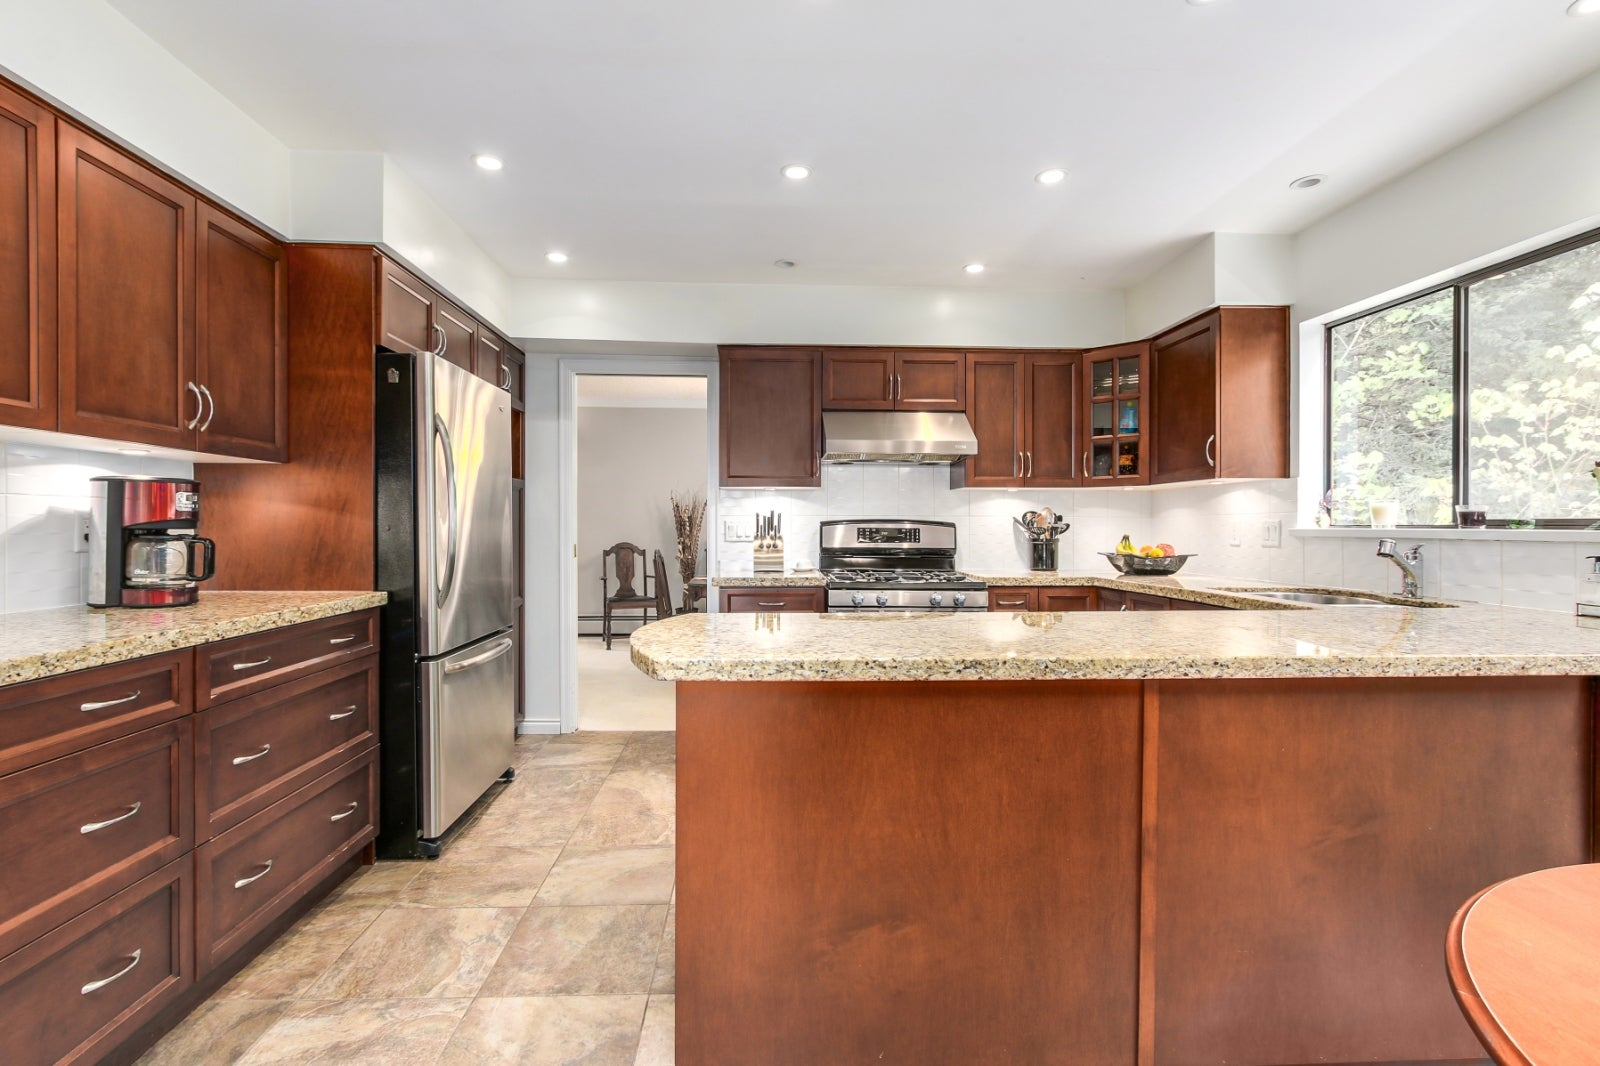 4678 CARSON STREET - South Slope House/Single Family for sale, 5 Bedrooms (R2162406) #10